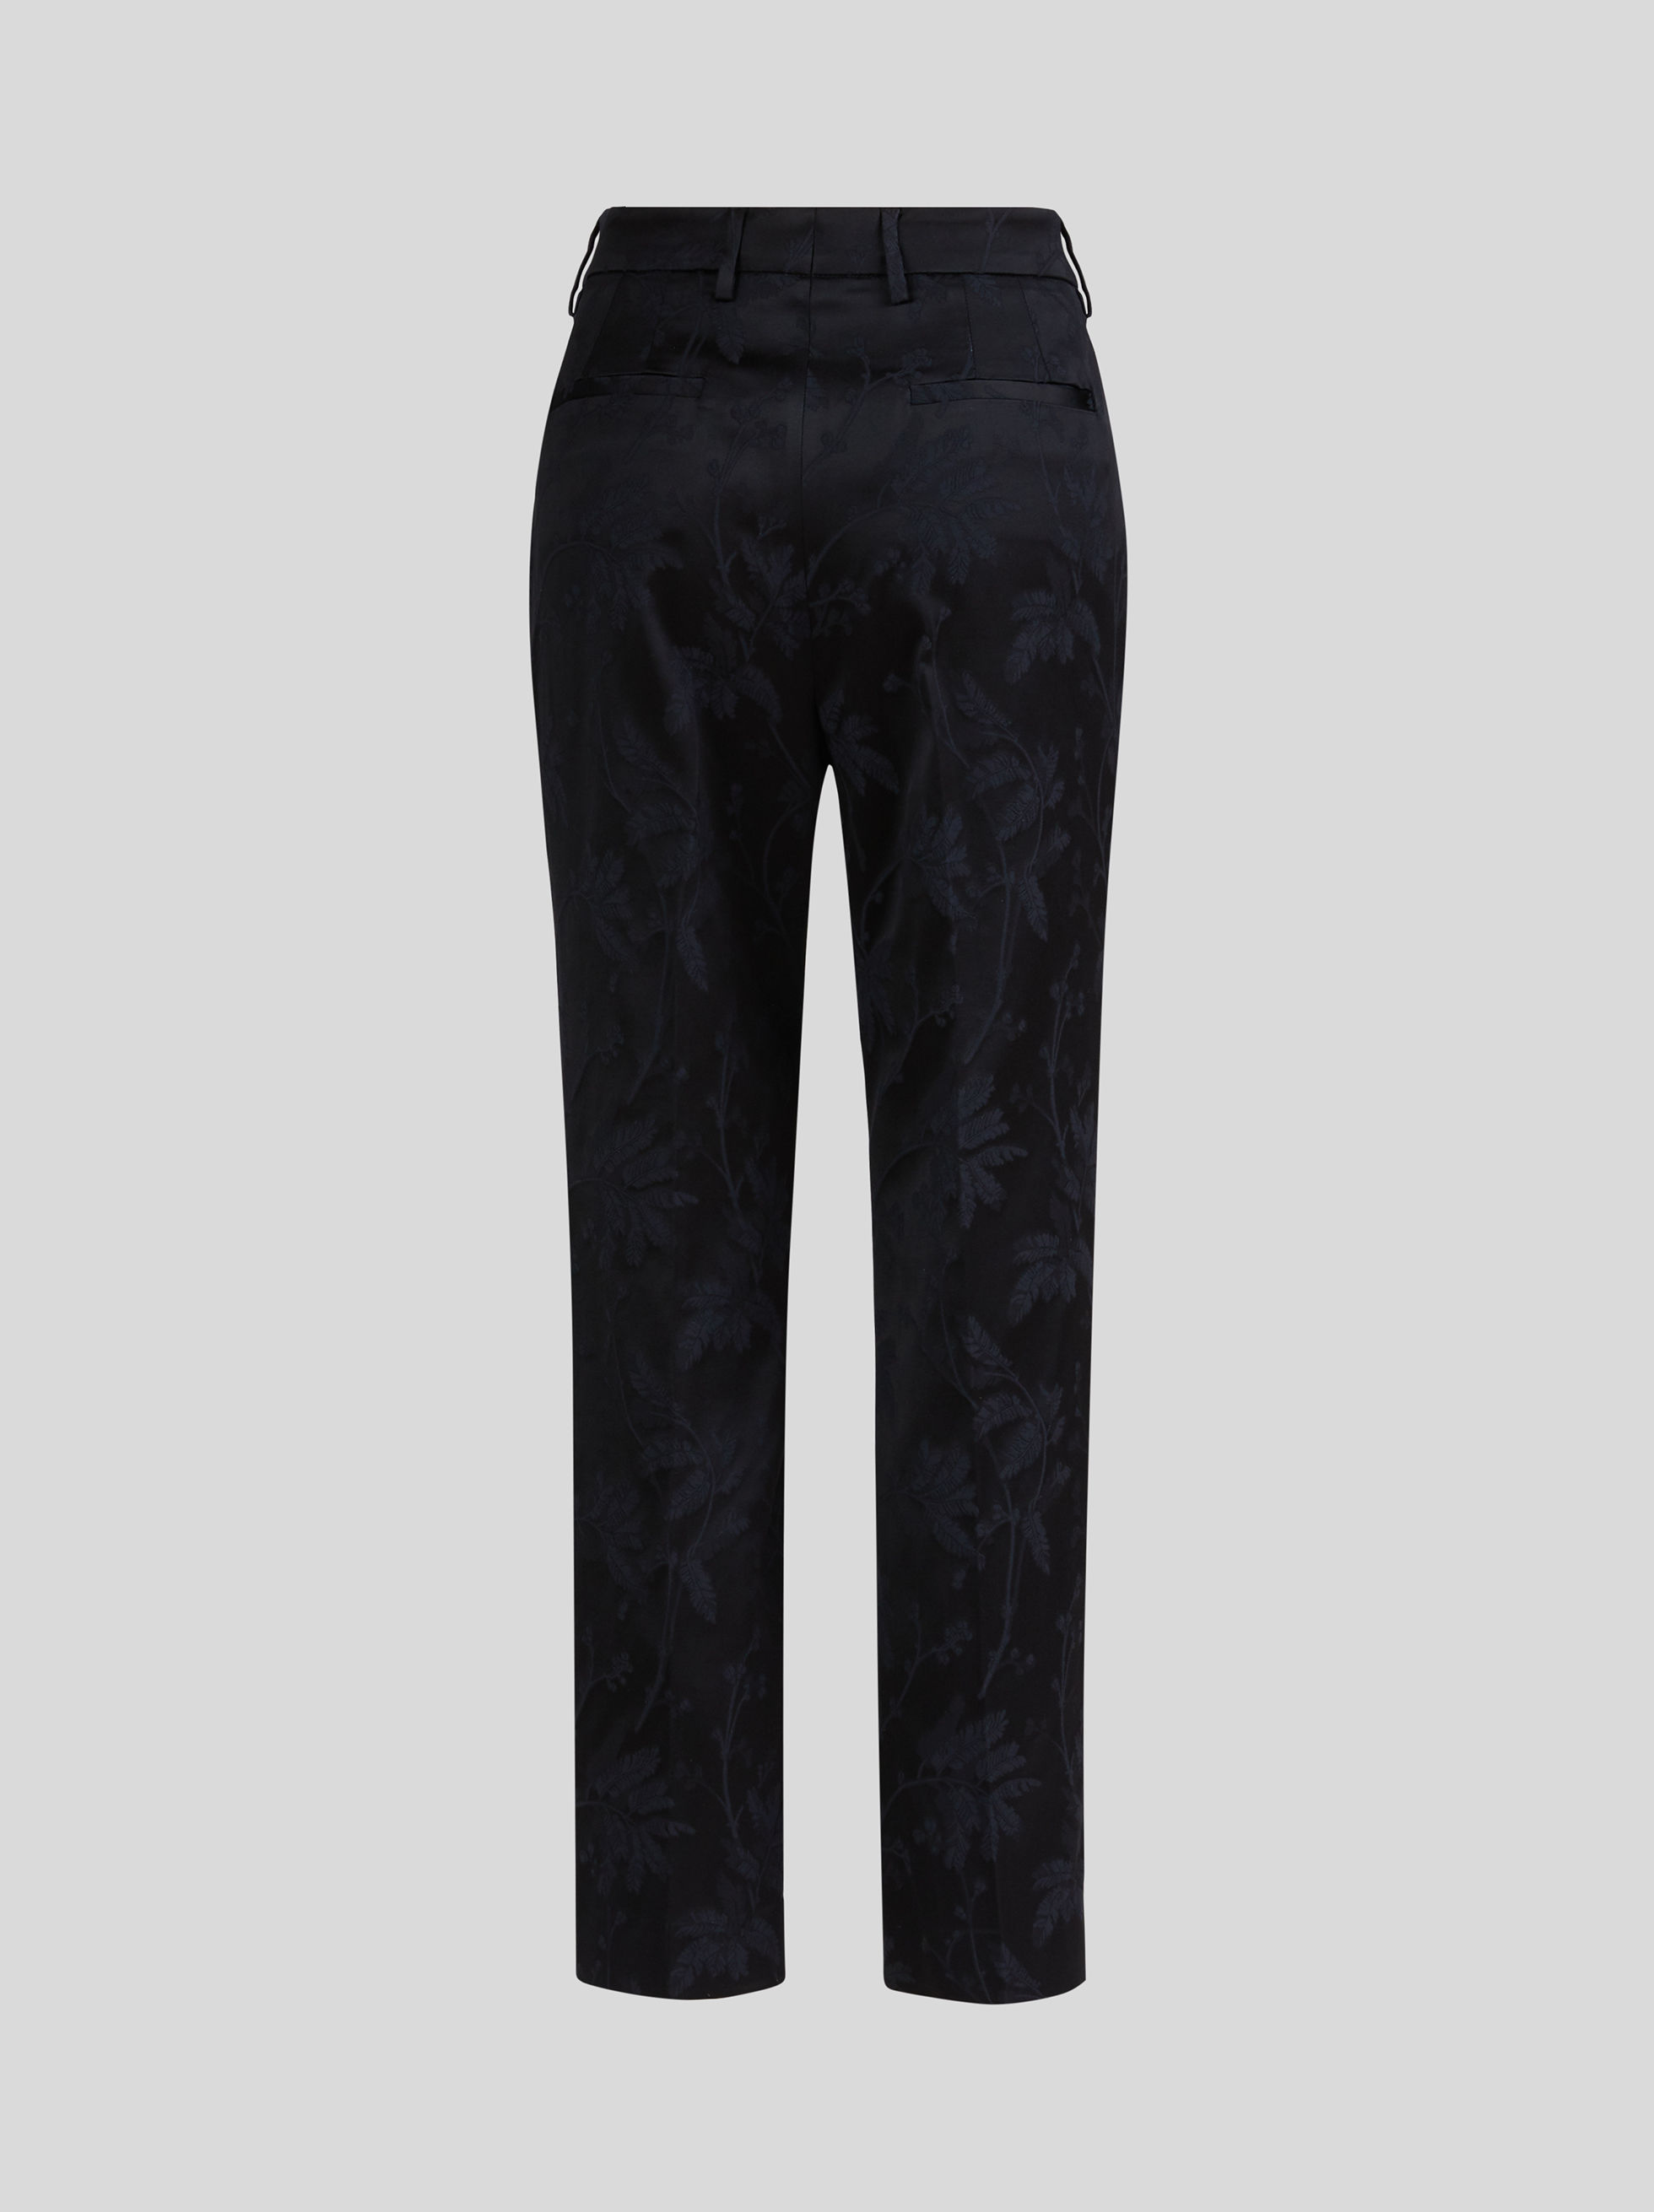 JACQUARD TROUSERS WITH LEAFY PATTERN